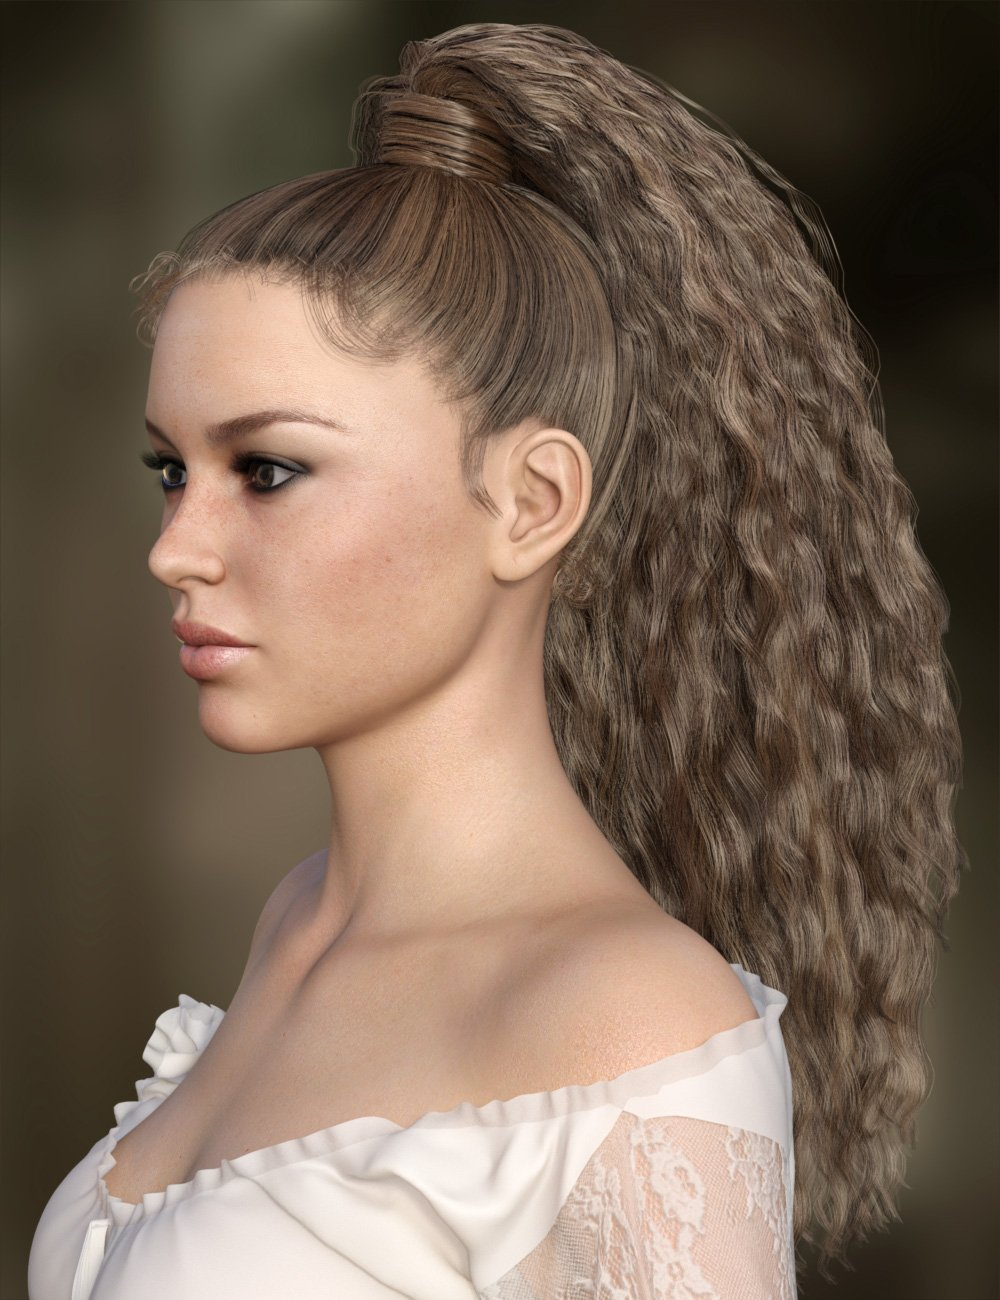 MRL Curly Ponytail for Genesis 8 Female with Color Mixing by: Mihrelle, 3D Models by Daz 3D